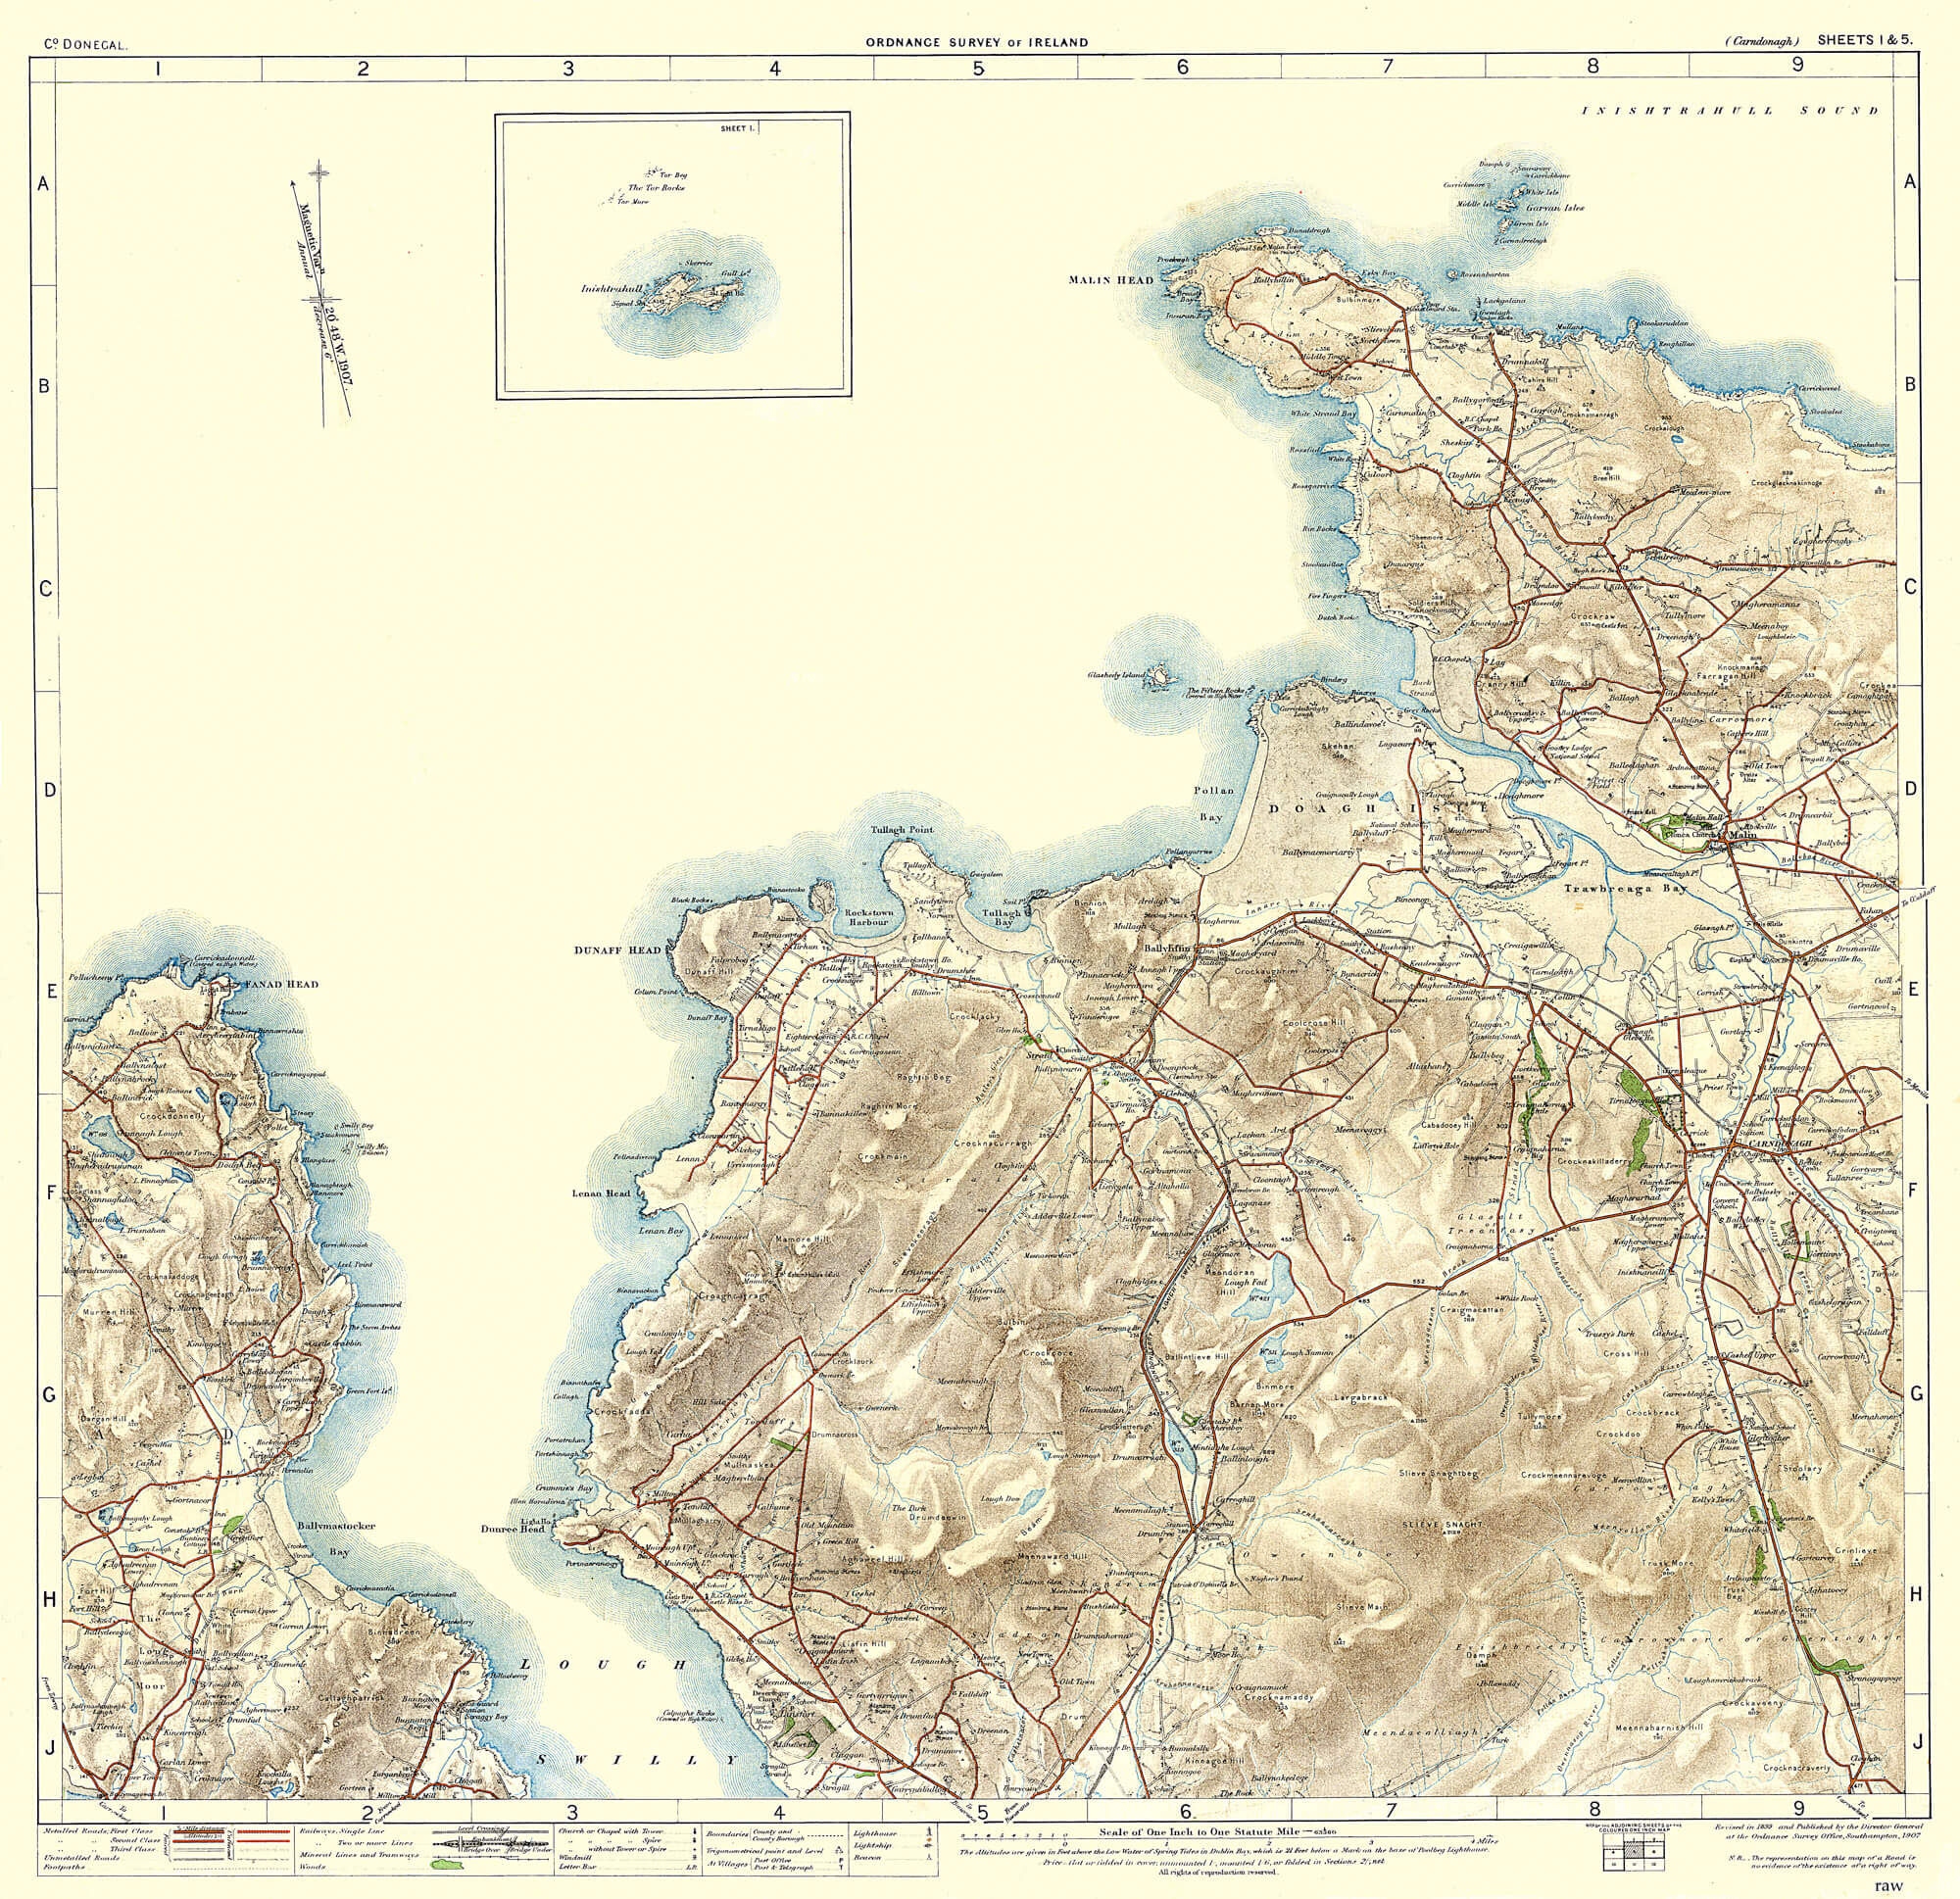 Osi Map Of Ireland.Ireland 1in Topographic Col Abl 1907 Sheets 1 To 50 L Brown Collection